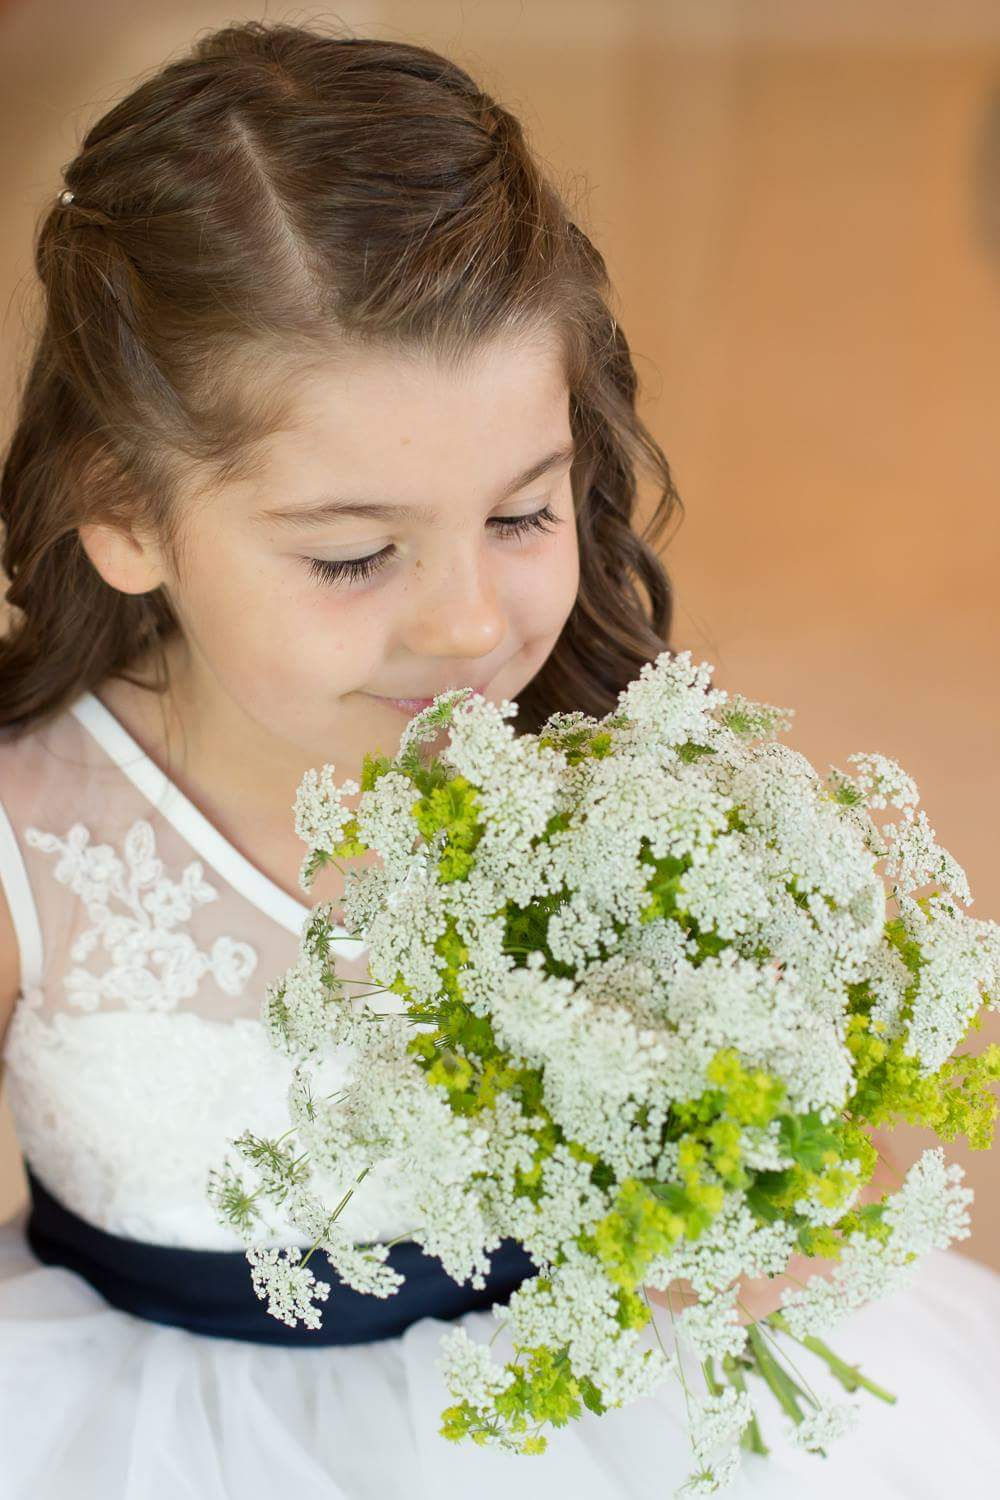 irish-flower-girl-posy-west-cork.jpg.jpeg